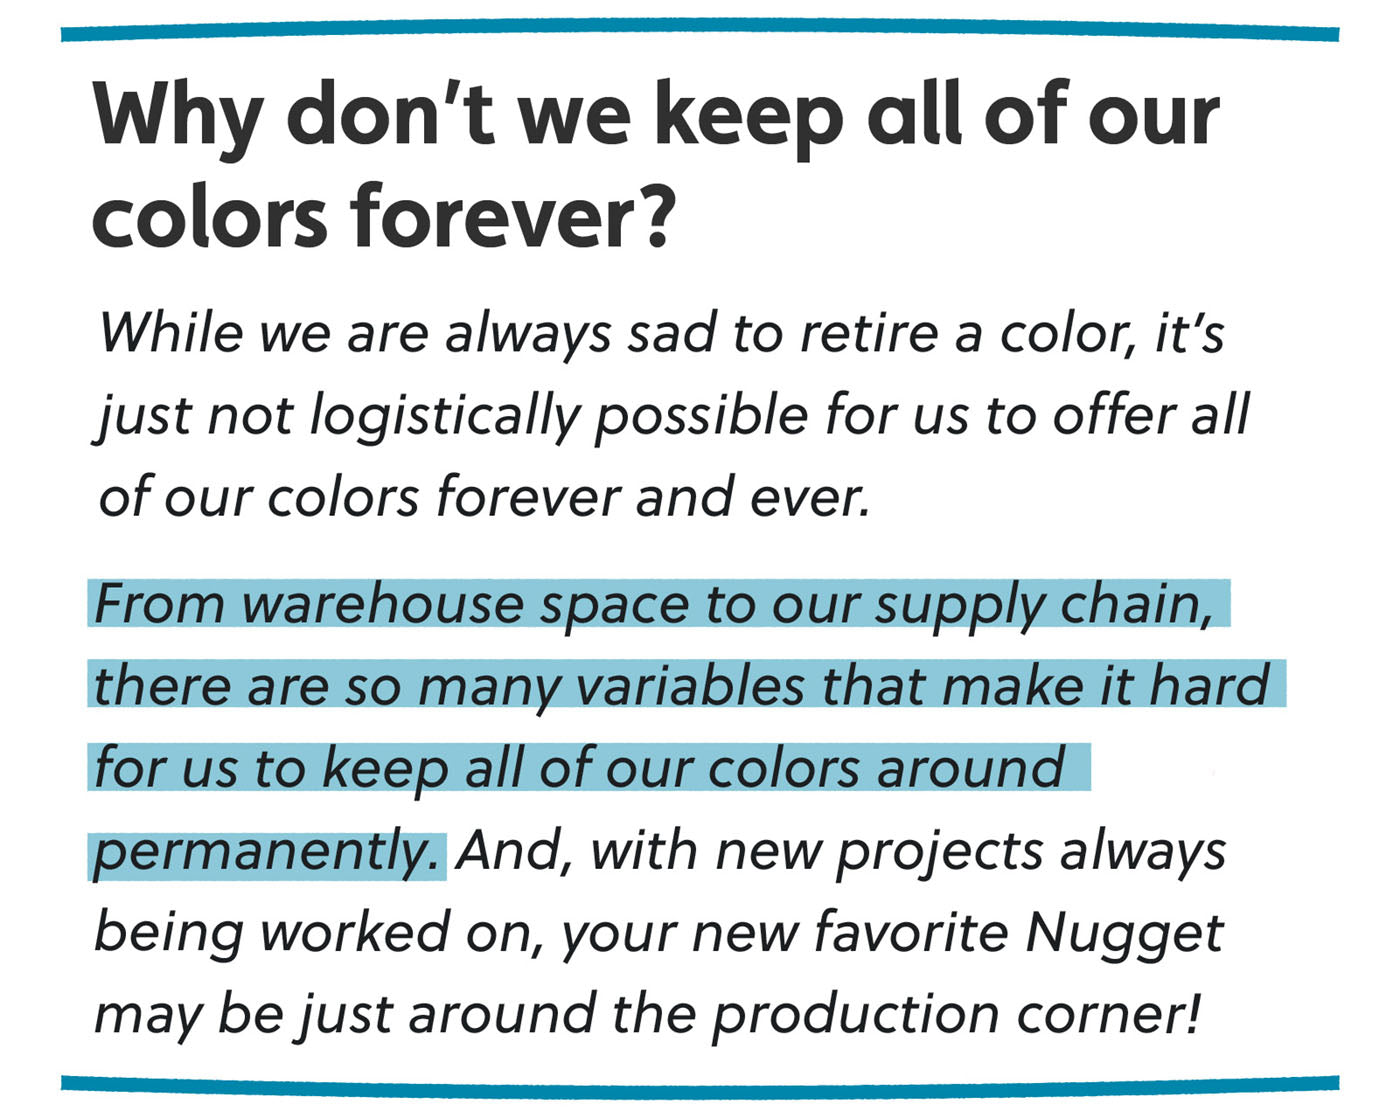 Why don't we keep all of our colors forever? While we are always sad to retire a color, it's just not logistically possible for us to offer all of our colors forever and ever. From warehouse space to our supply chain, there are so many variables that make it hard for us to keep all of our colors around permanently. And, with new projects always being worked on, your new favorite Nugget may be just around the production corner!